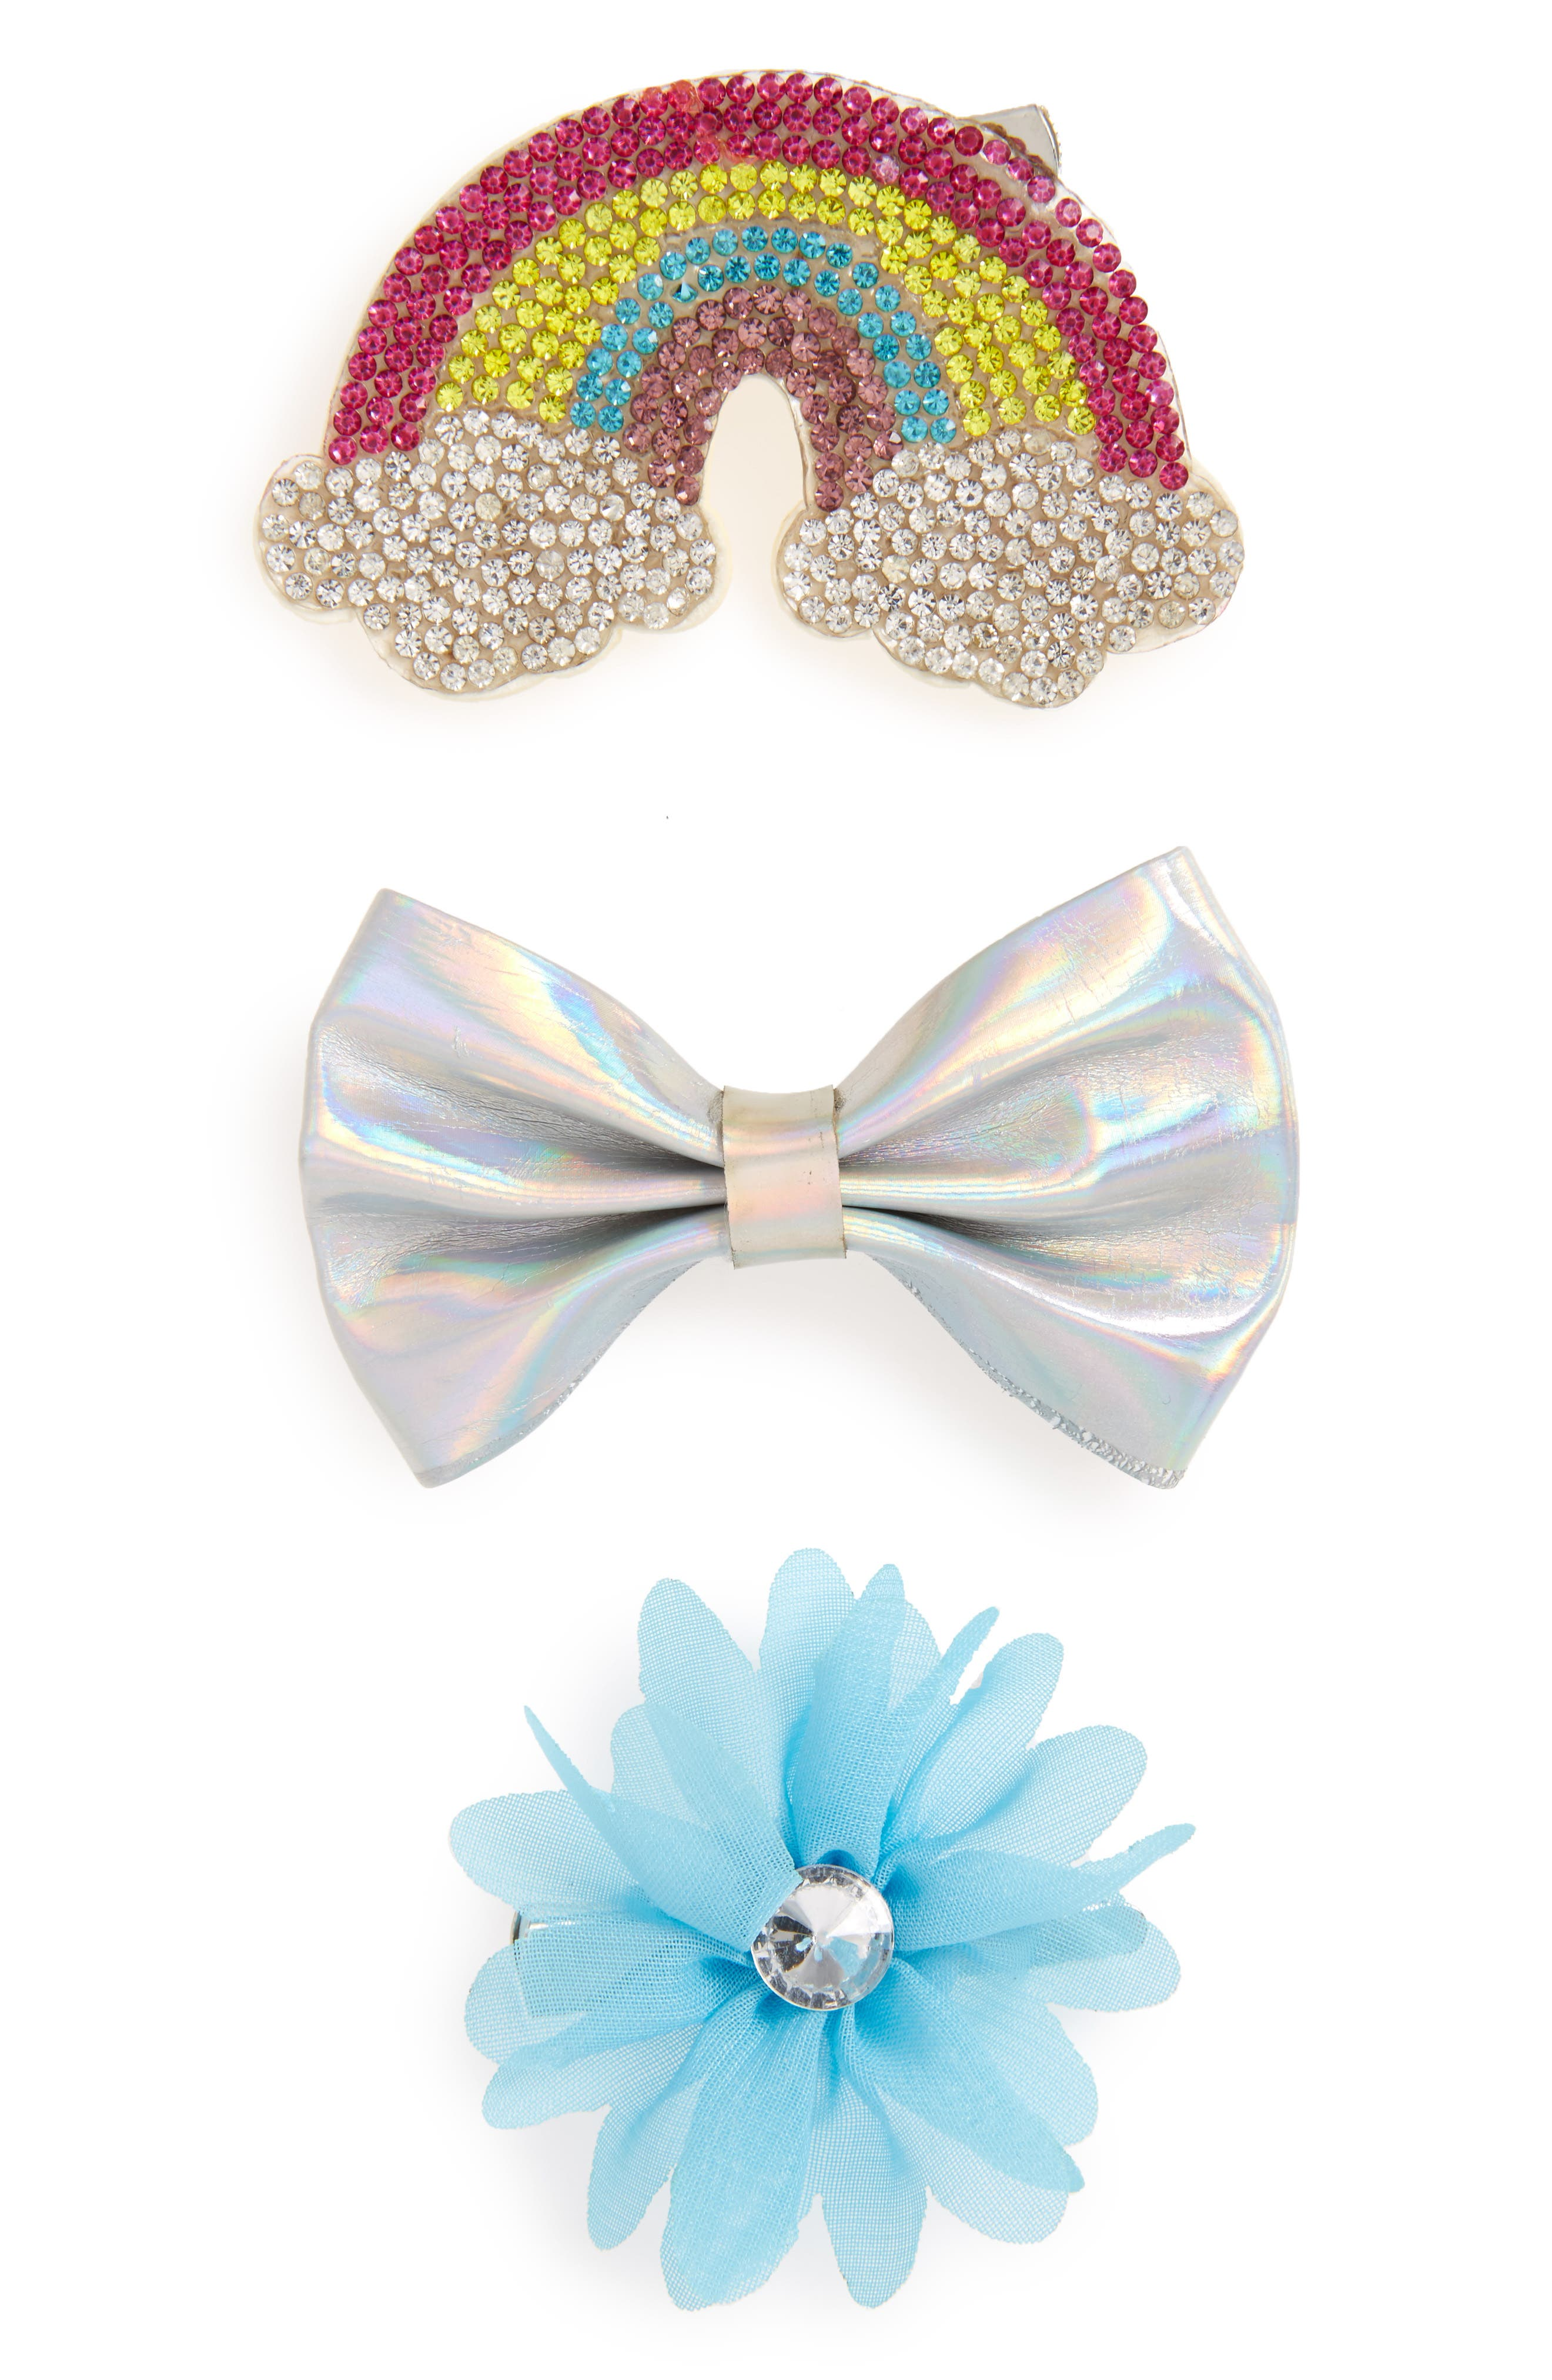 CAPELLI OF NEW YORK 3-Piece Hair Clip Set